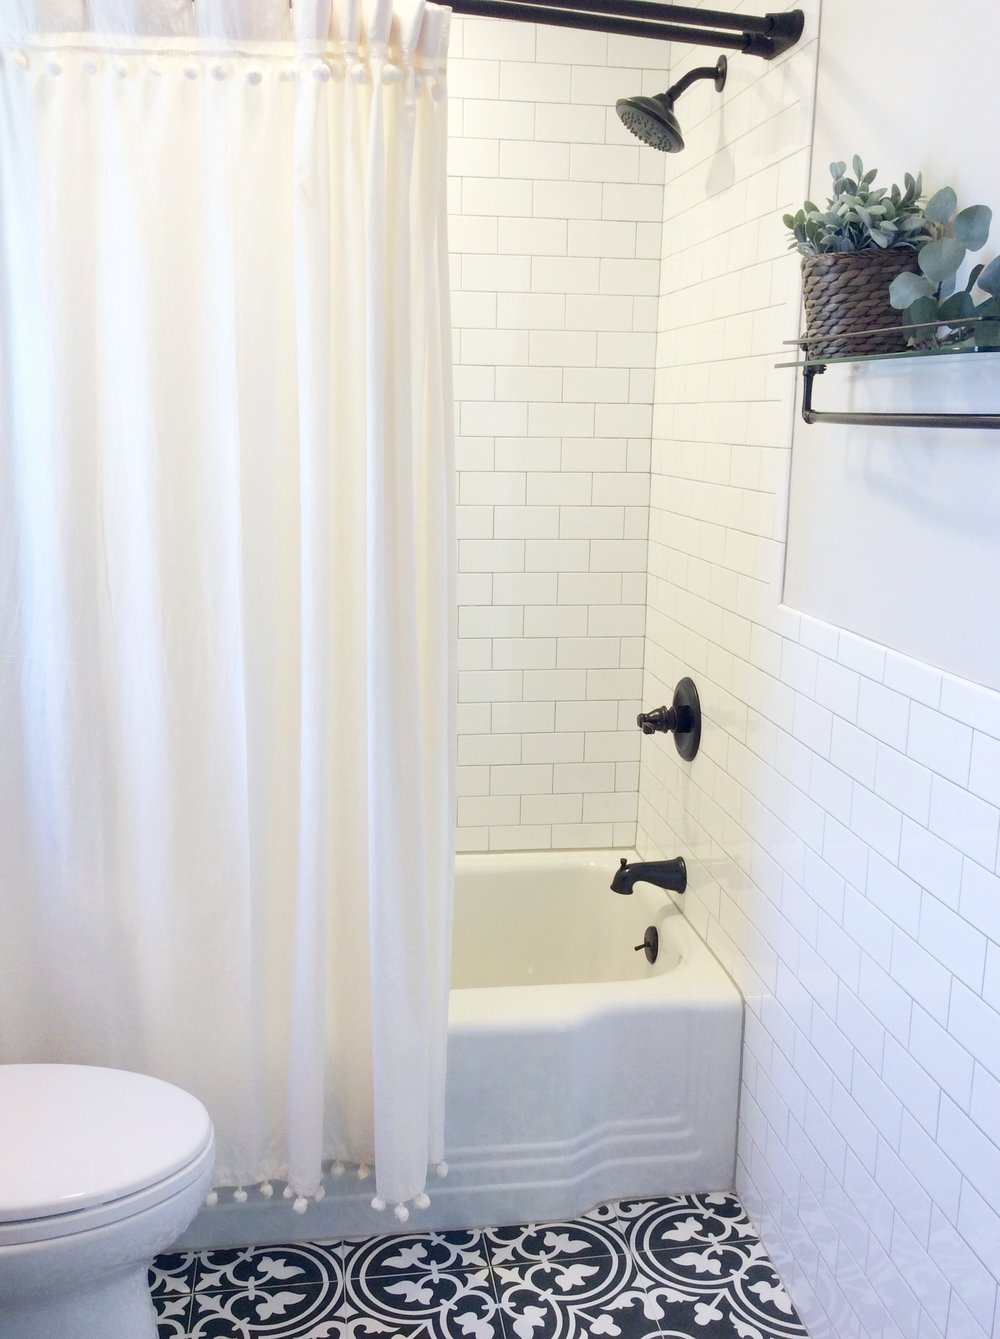 Fresh Farmhouse Style Bath. Black, White and Wood Bathroom. Shower Curtain: Urban Outfitters, Kohler Oil Rubbed Bronze Fixtures, Toto toilet, Somertile floor, Oyster Gray grout, originial design by beam&bloom